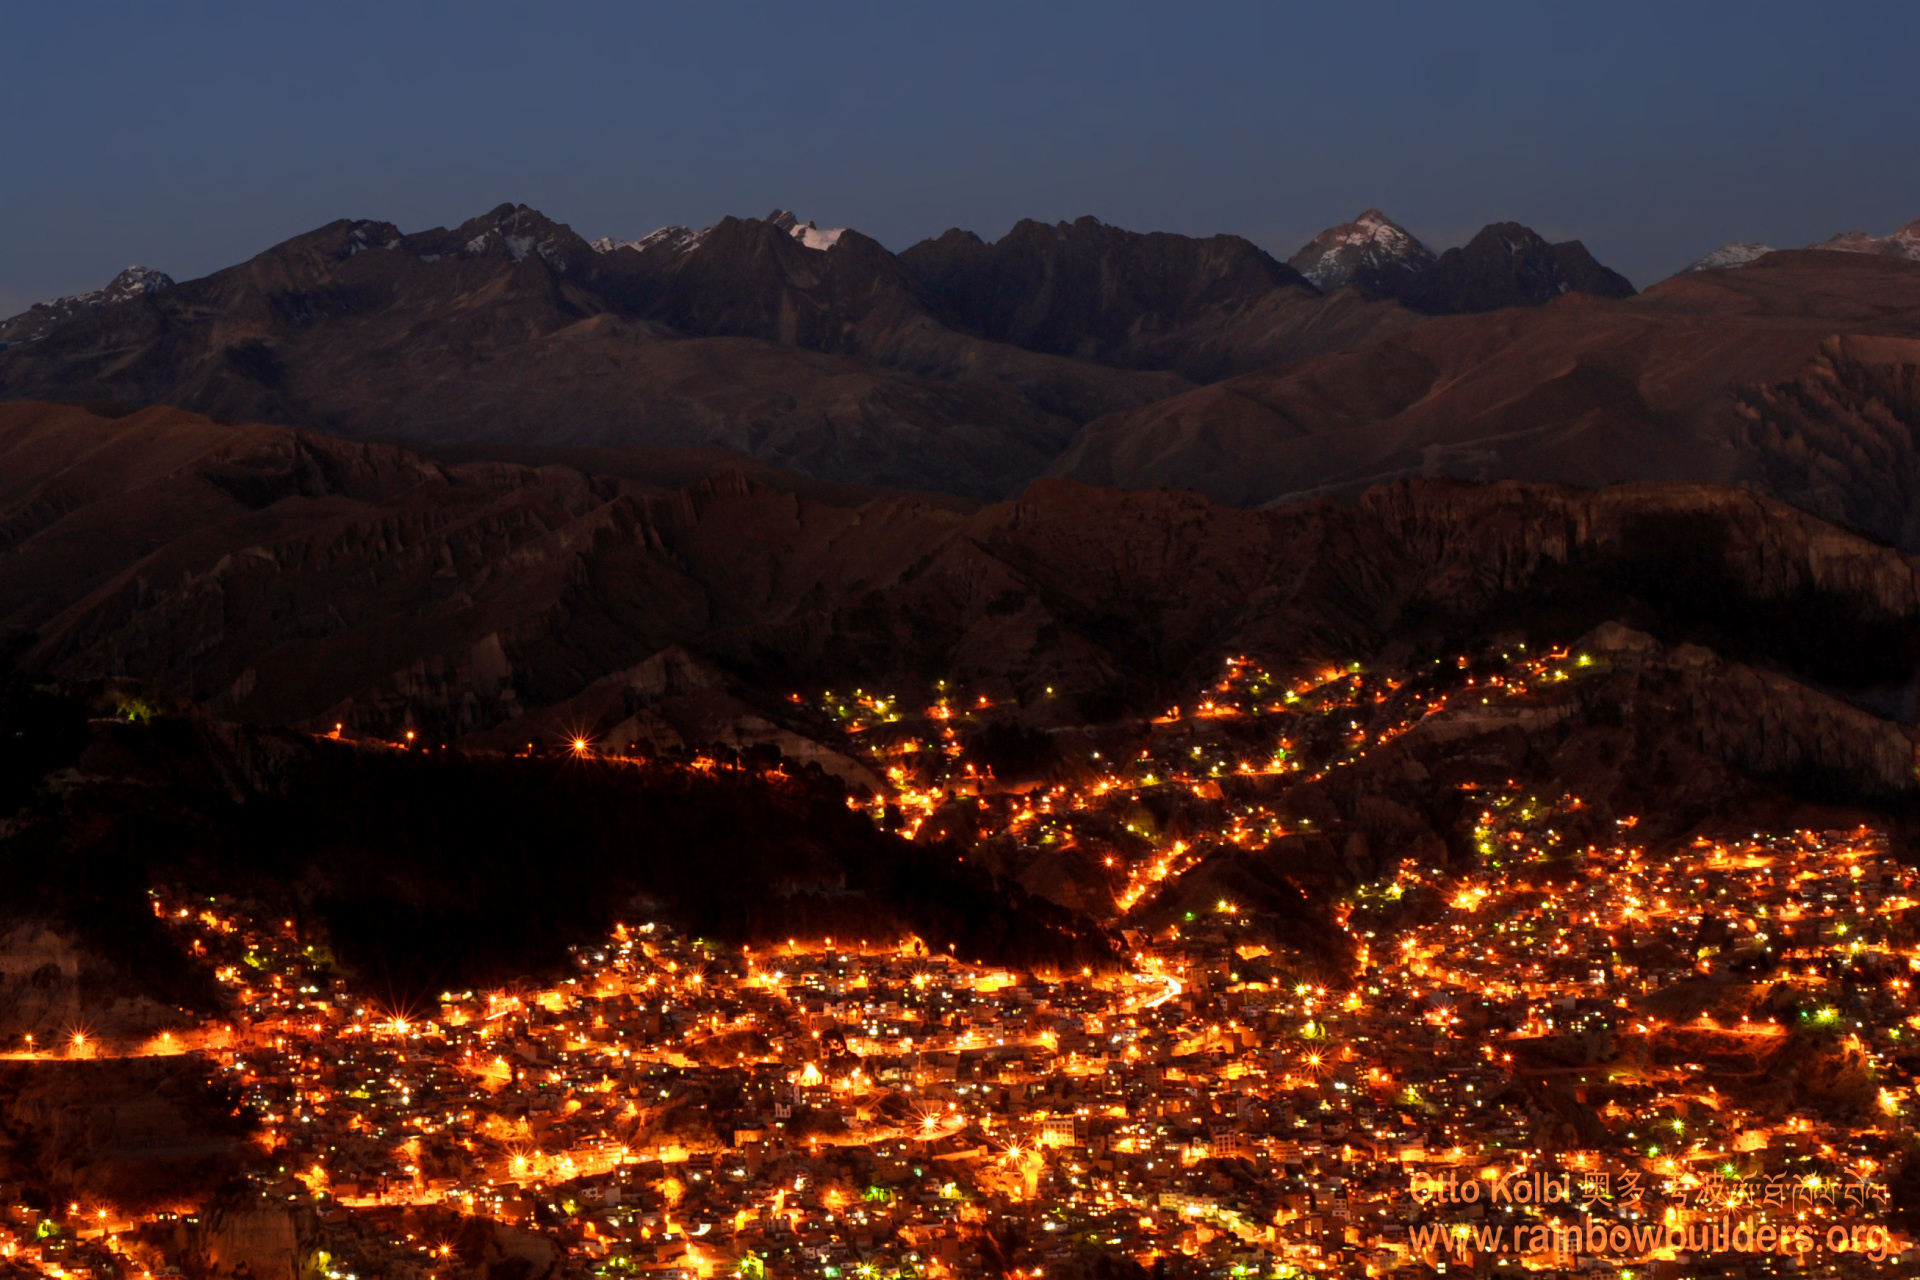 The people of La Paz have built houses in each tiny valley which is large enough to hold a small road. This becomes obvious after sunset, when the streetlamps reveal their position.